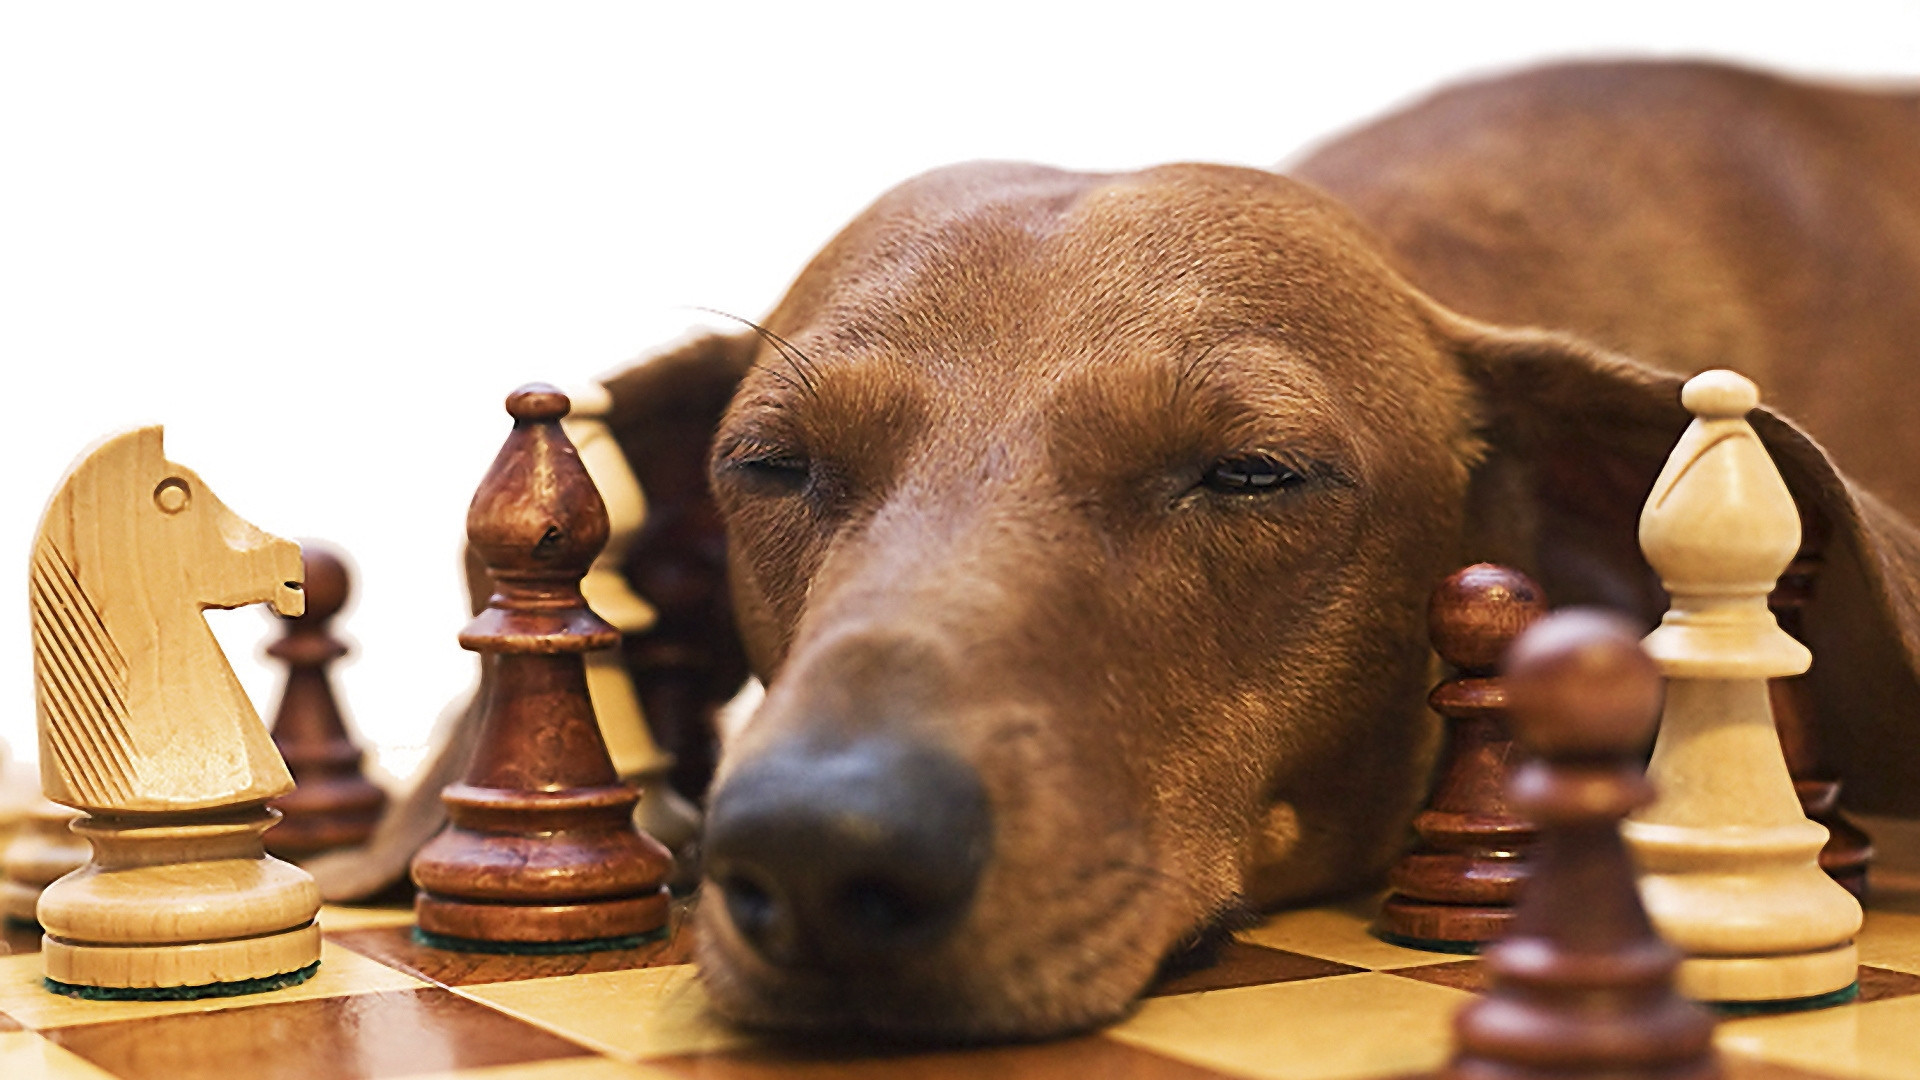 1920x1080  Wallpaper dachshund, chess, dog, face, fatigue